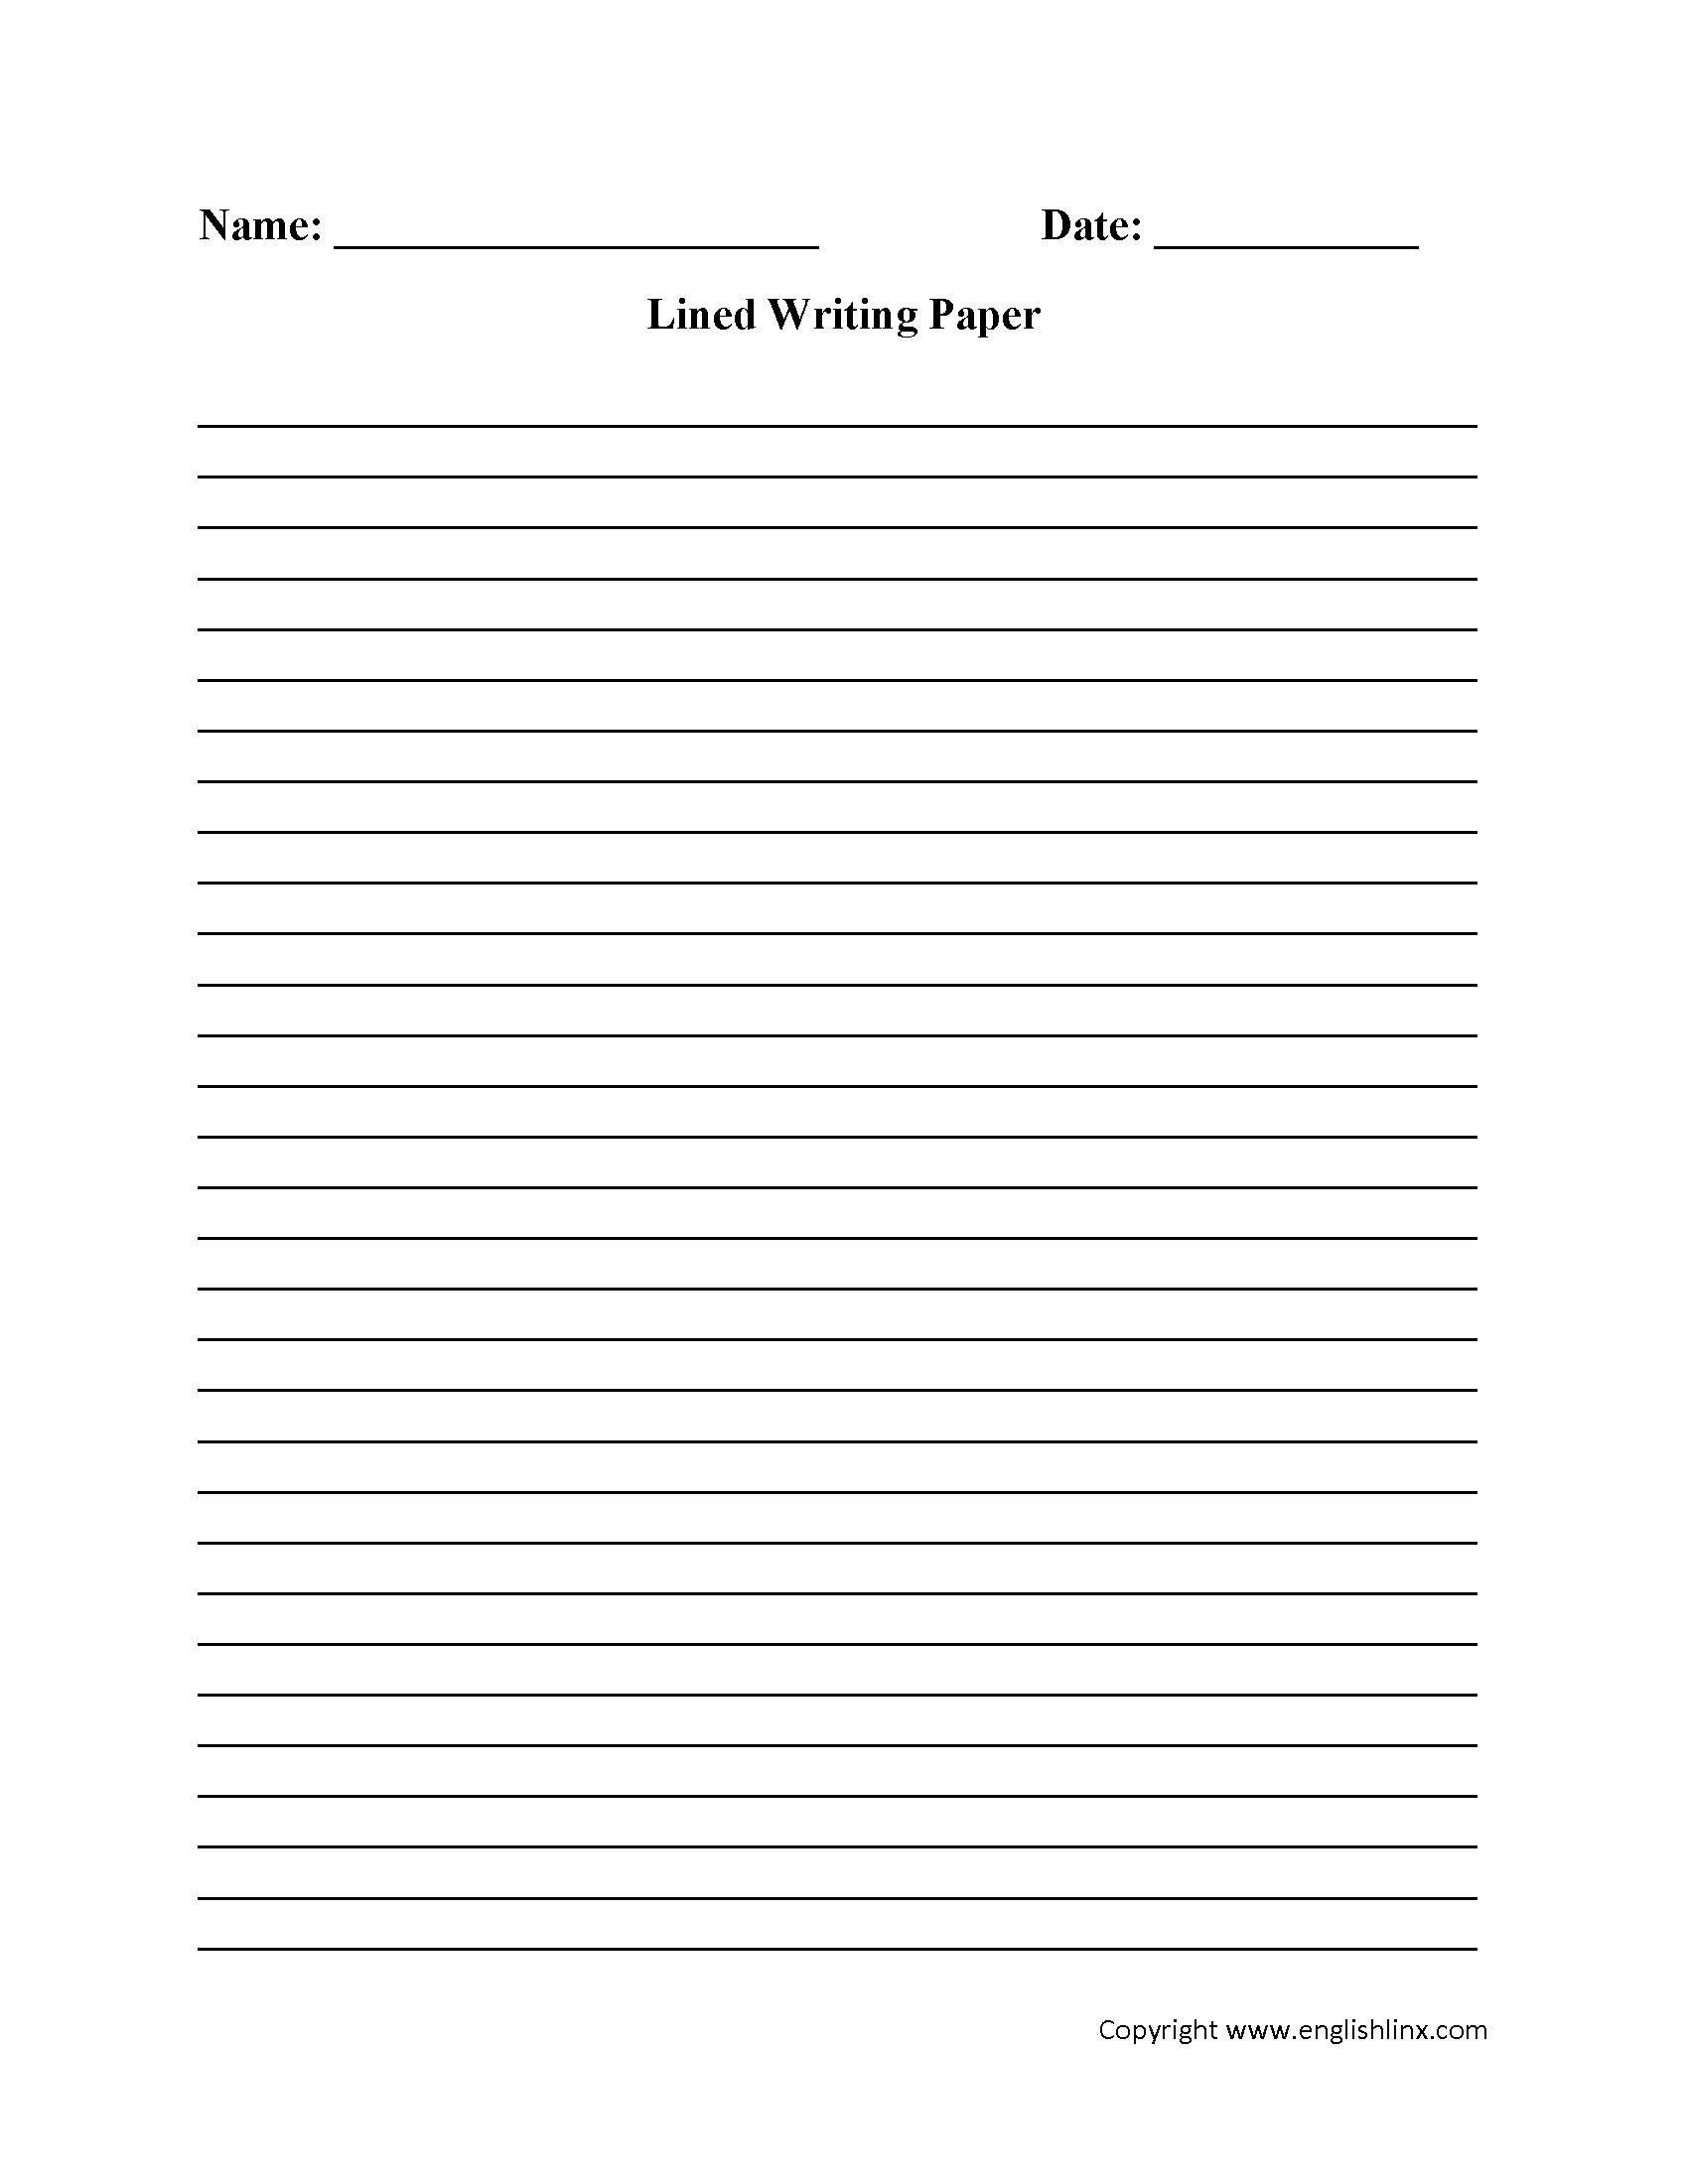 Writing Worksheets | Lined Writing Paper Worksheets - Free Printable Lined Handwriting Paper